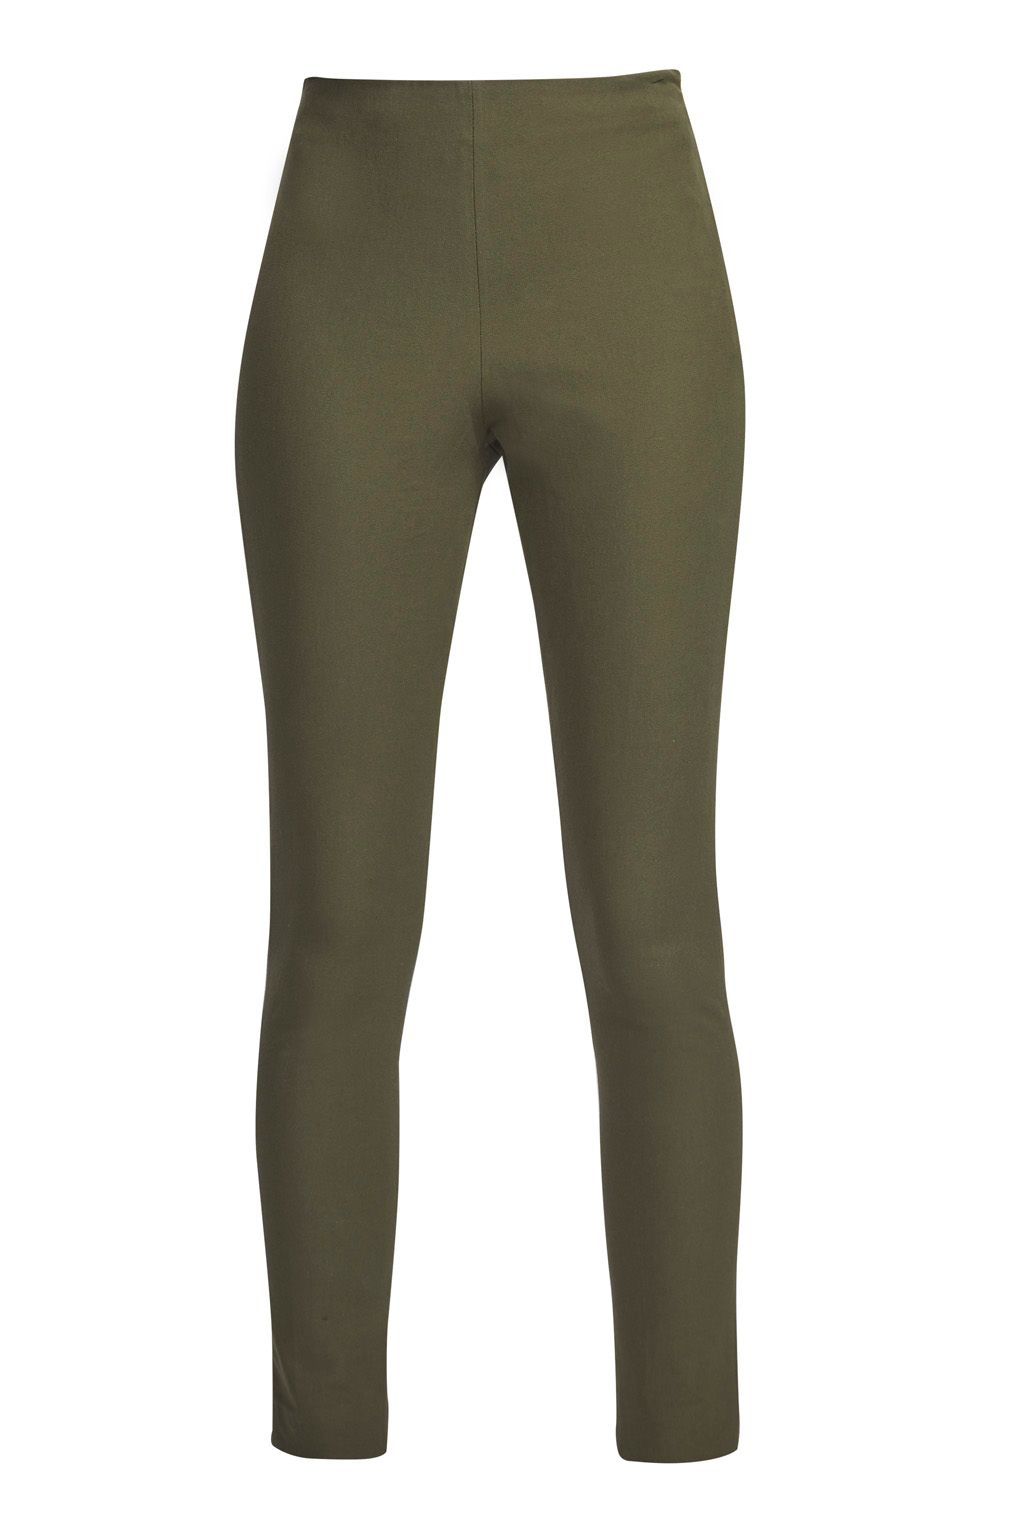 French Connection Street Twill Skinny Trousers, Olive